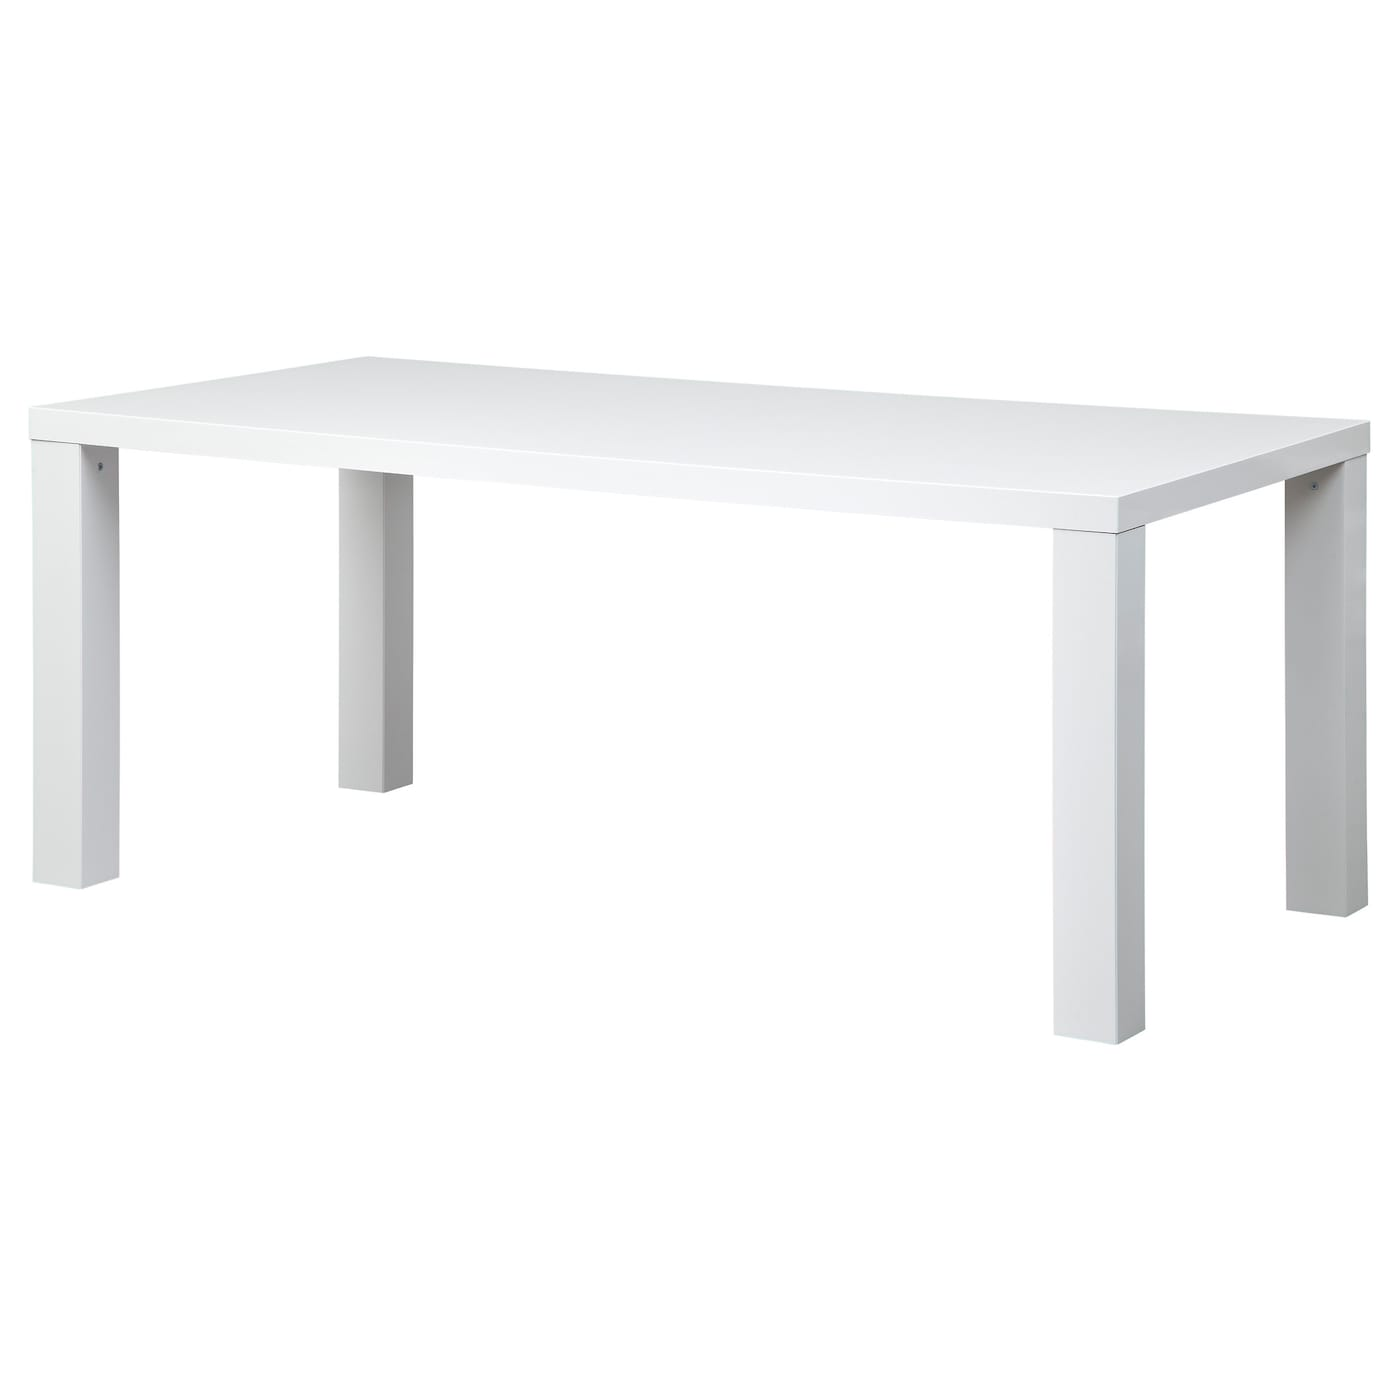 toresund table blanc brillant 180 x 90 cm ikea. Black Bedroom Furniture Sets. Home Design Ideas